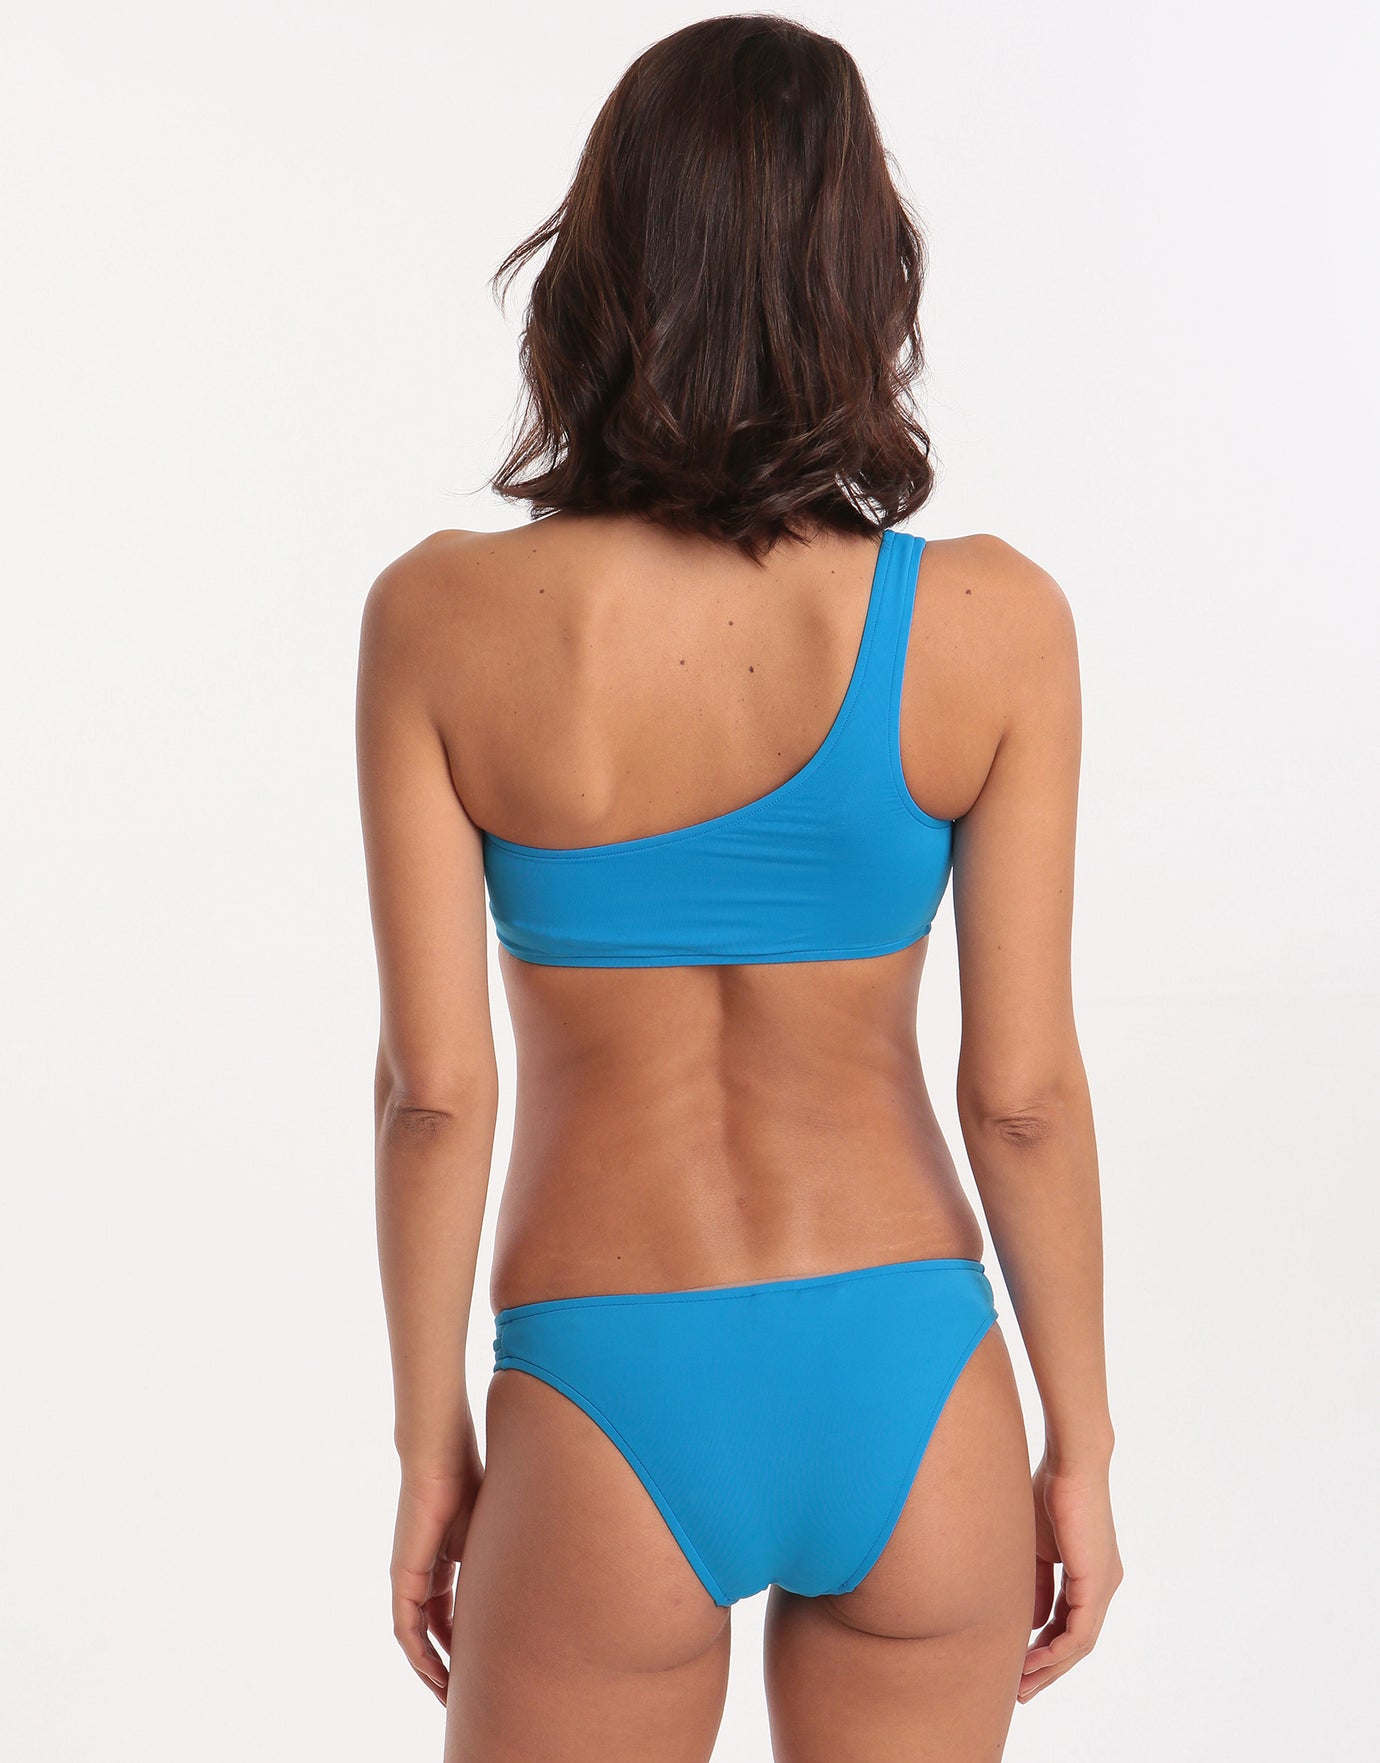 Seafolly Active Multi Rouleau Brazilian Bikini Bottom - Electric Blue